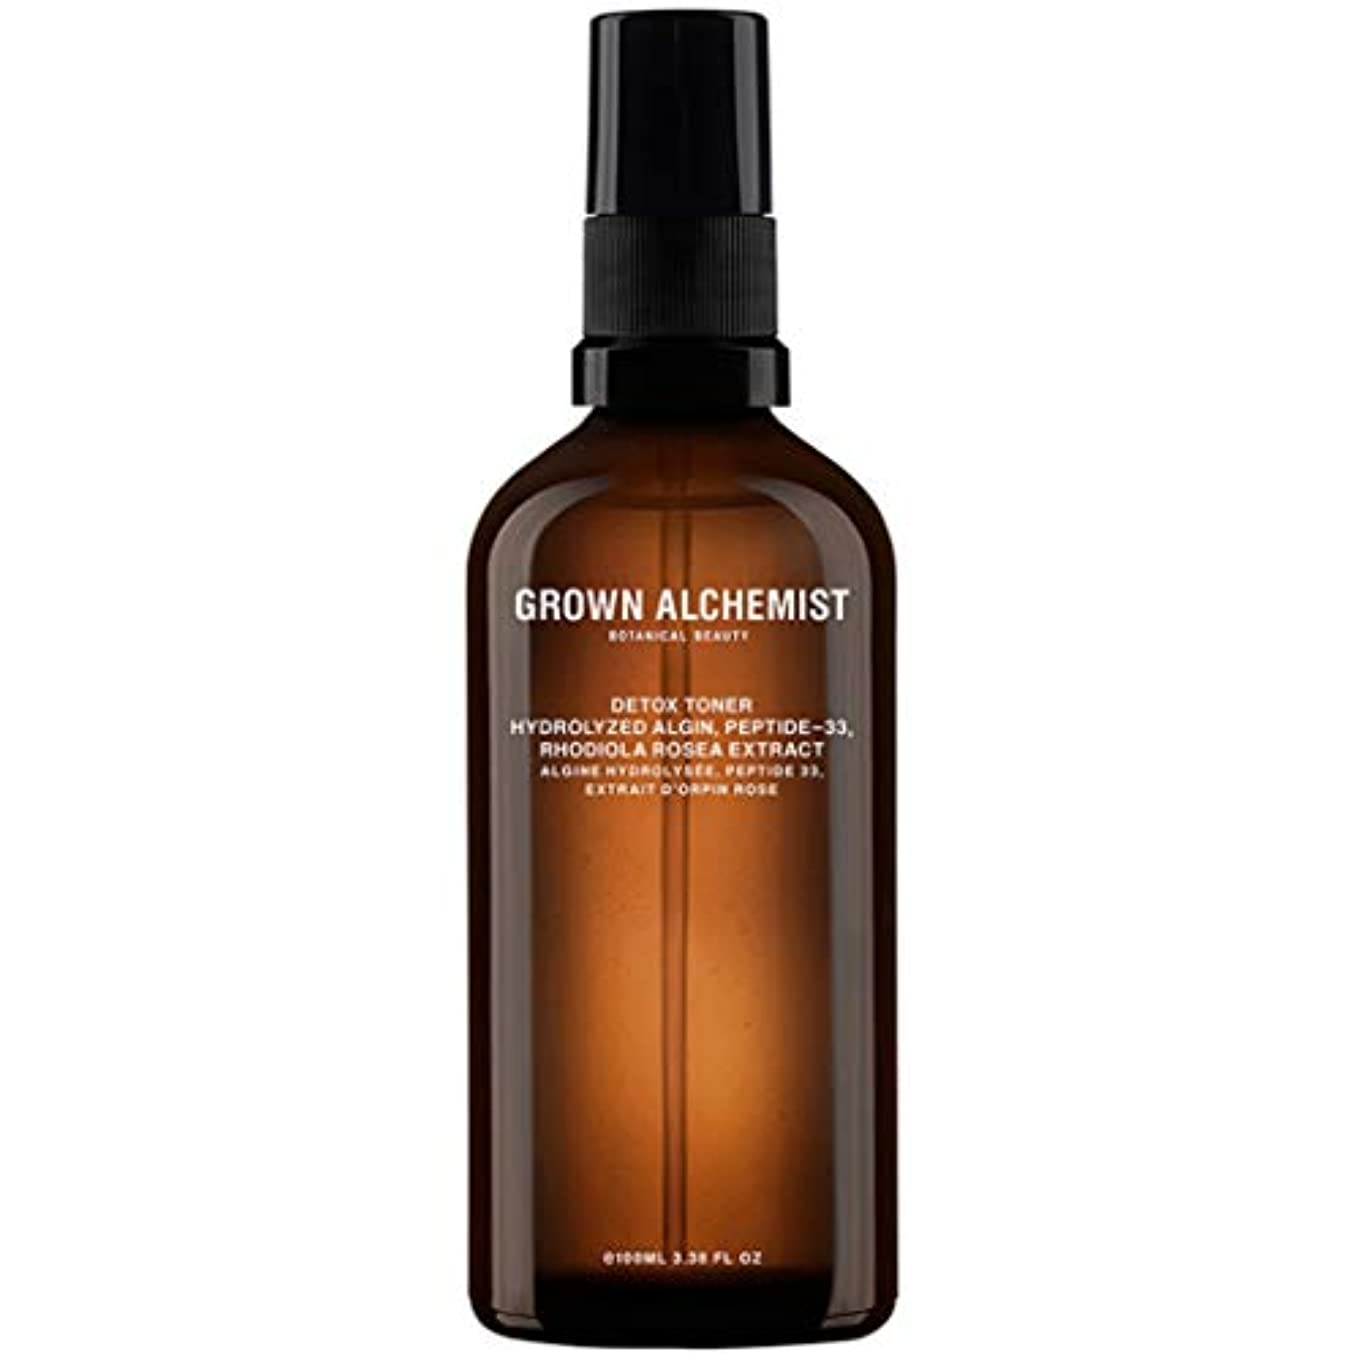 学生魔法無許可Grown Alchemist Detox Toner - Hydrolyzed Algin, Peptide-33 & Rhodiola Rosea Extract 100ml/3.38oz並行輸入品